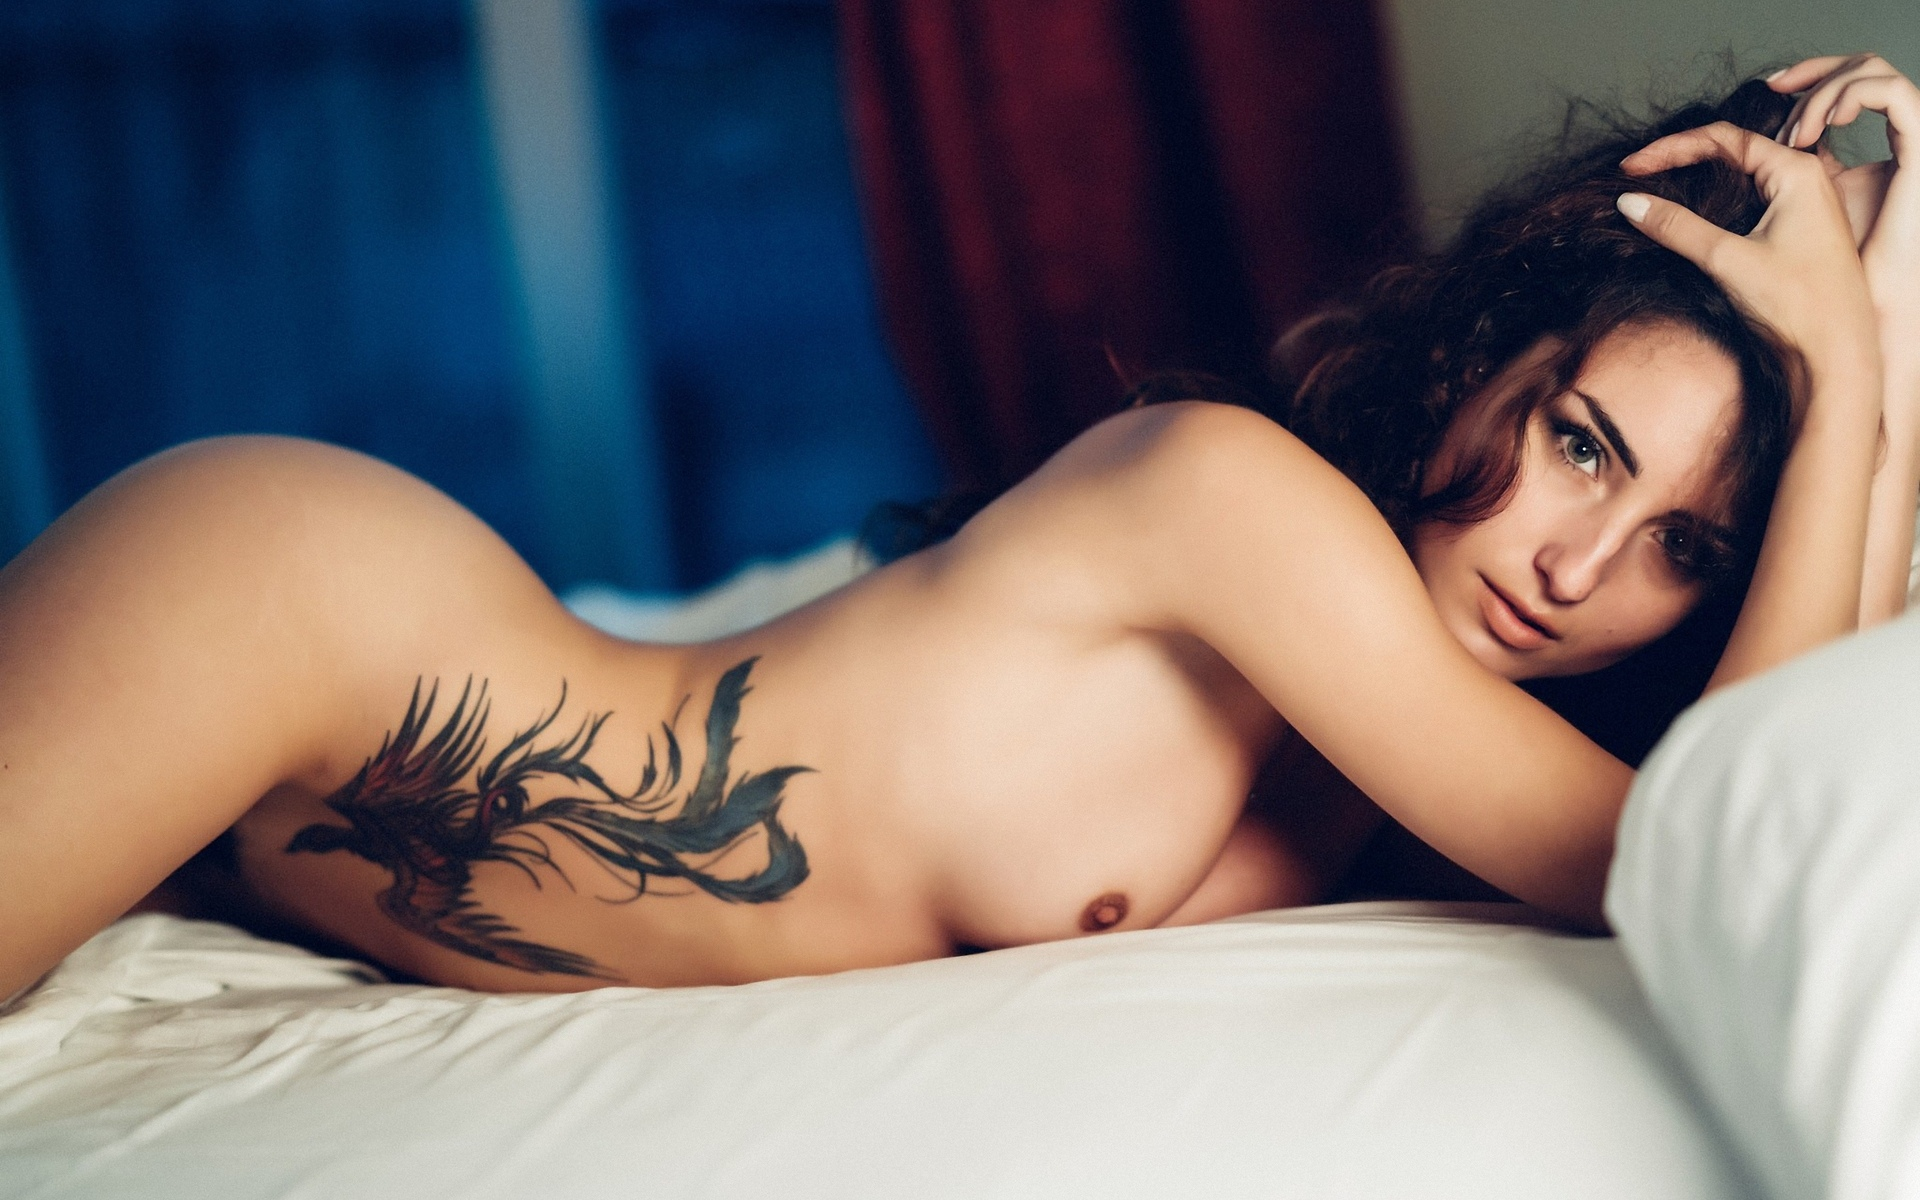 Nude Women With Tattoos Images, Stock Photos Vectors